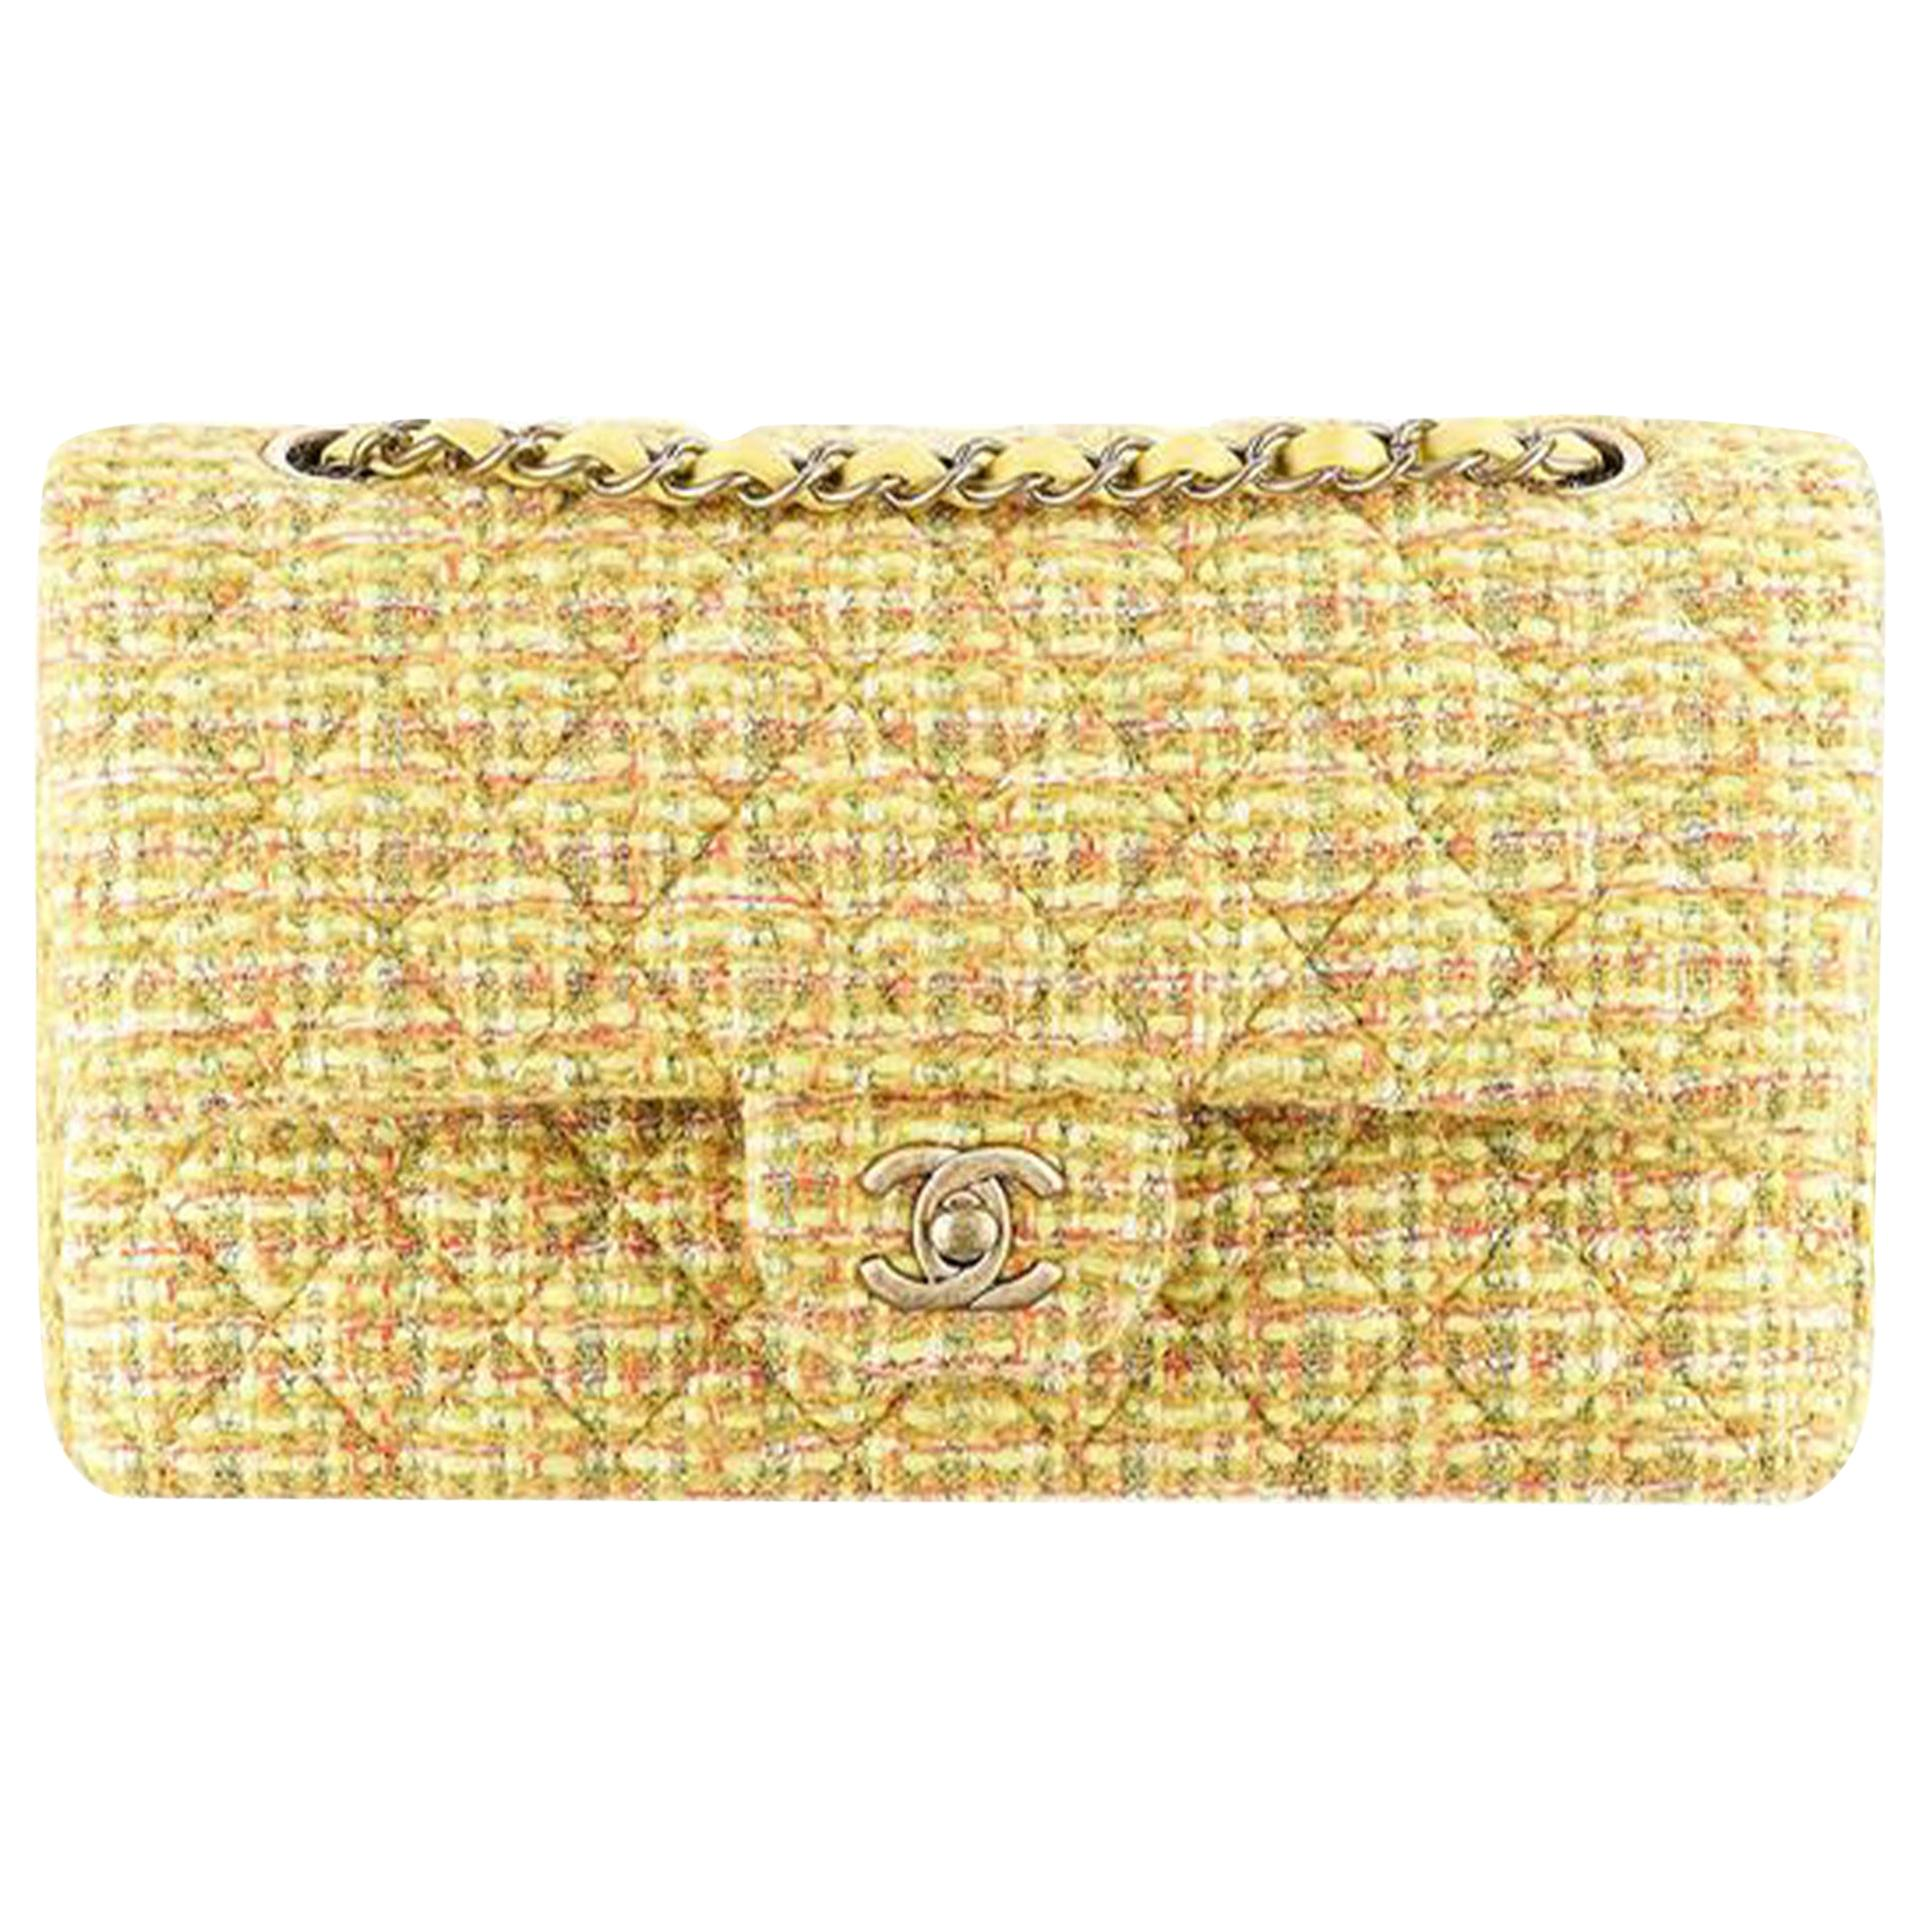 Chanel Classic Flap 2.55 Reissue Fall 2014 Yellow Tweed Shoulder Bag